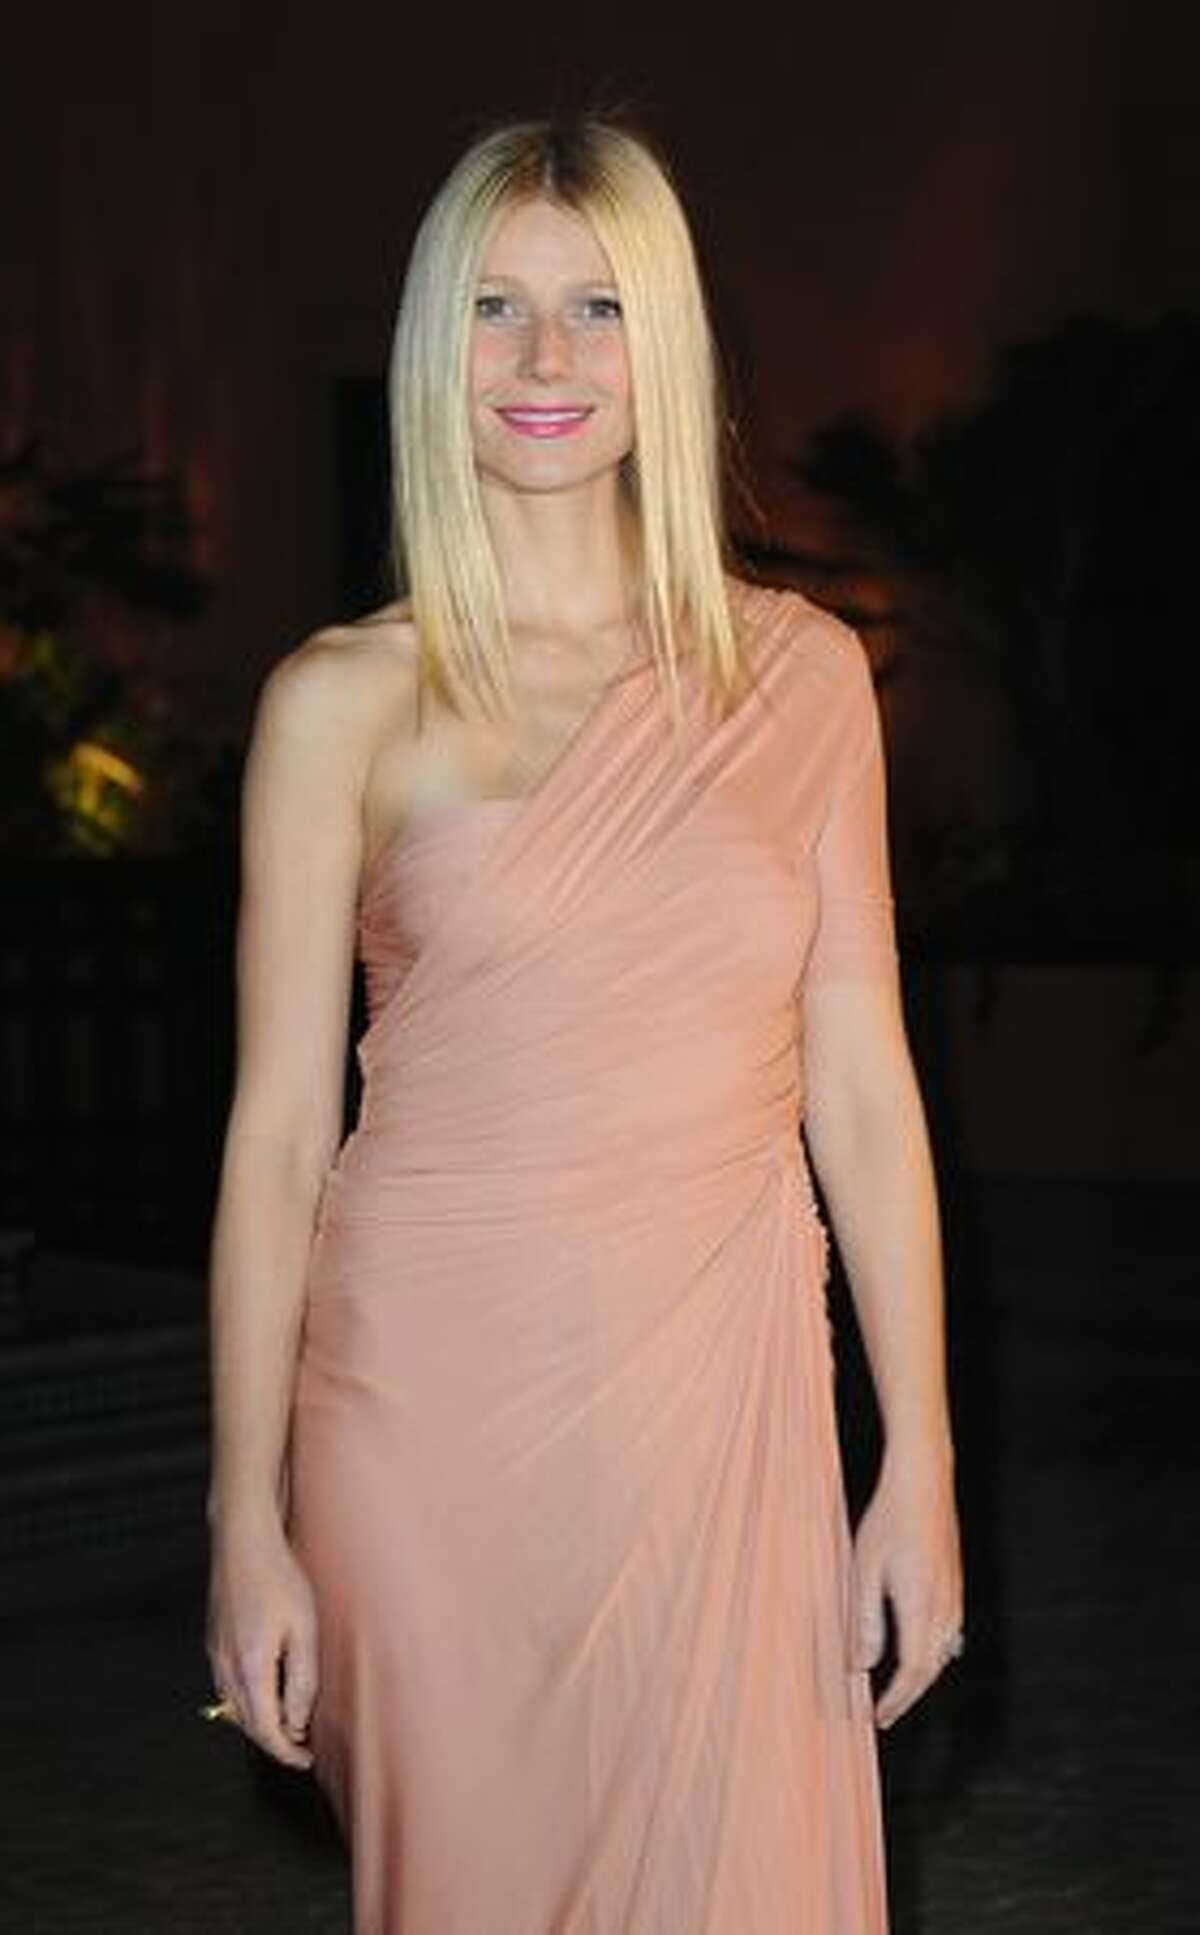 Actress Gwyneth Paltrow attends the Mamounia hotel inauguration in Marrakech, Morocco.